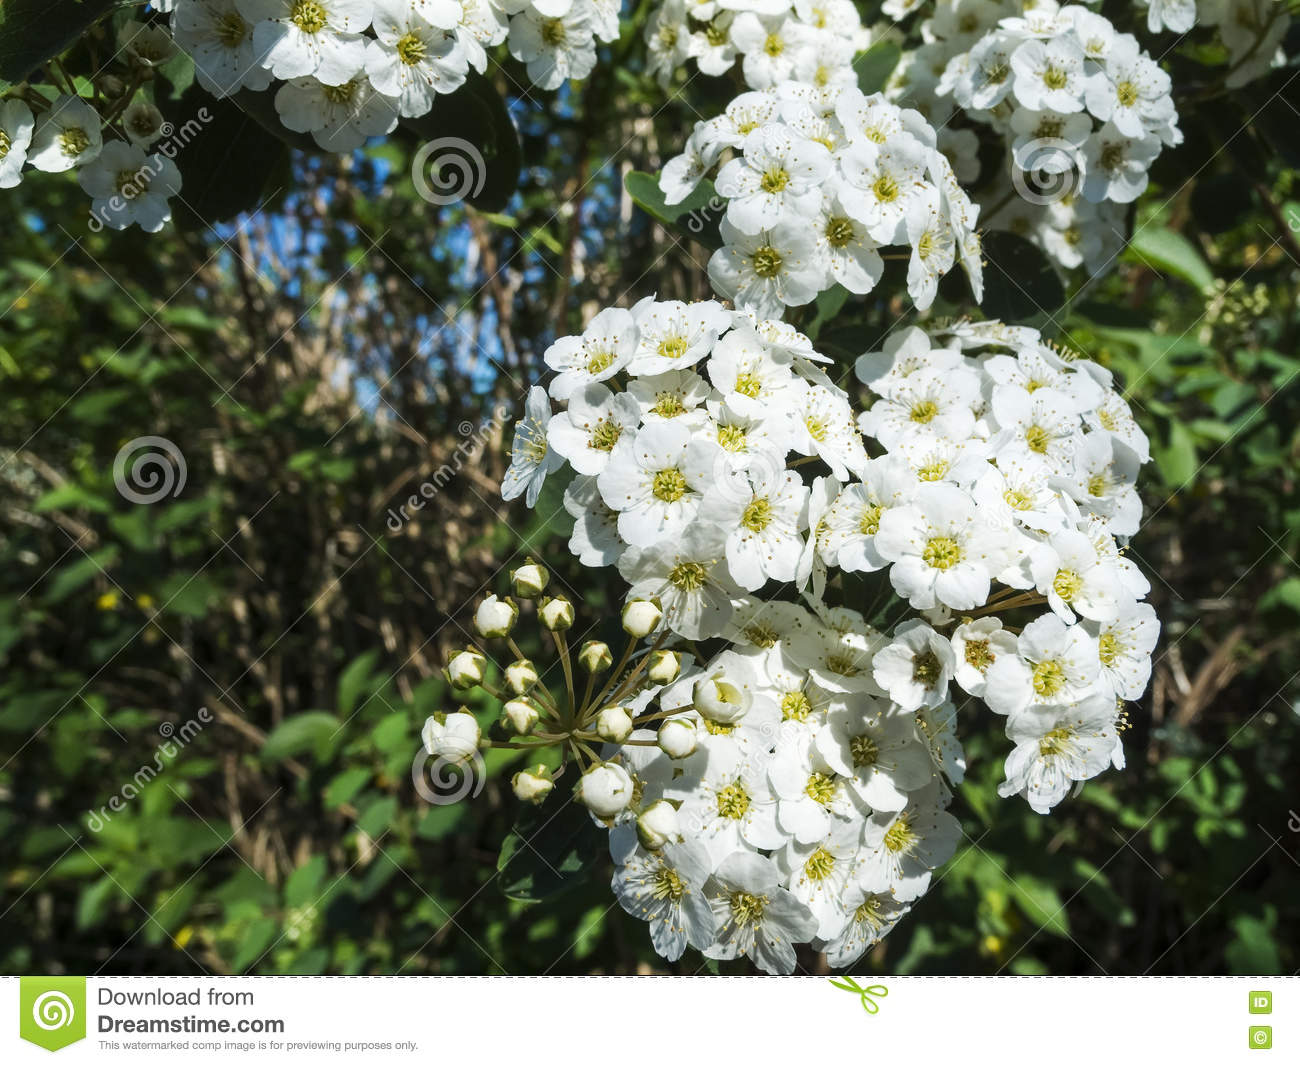 Blossoms Of Spiraea X Vanhouttei Stock Photo.